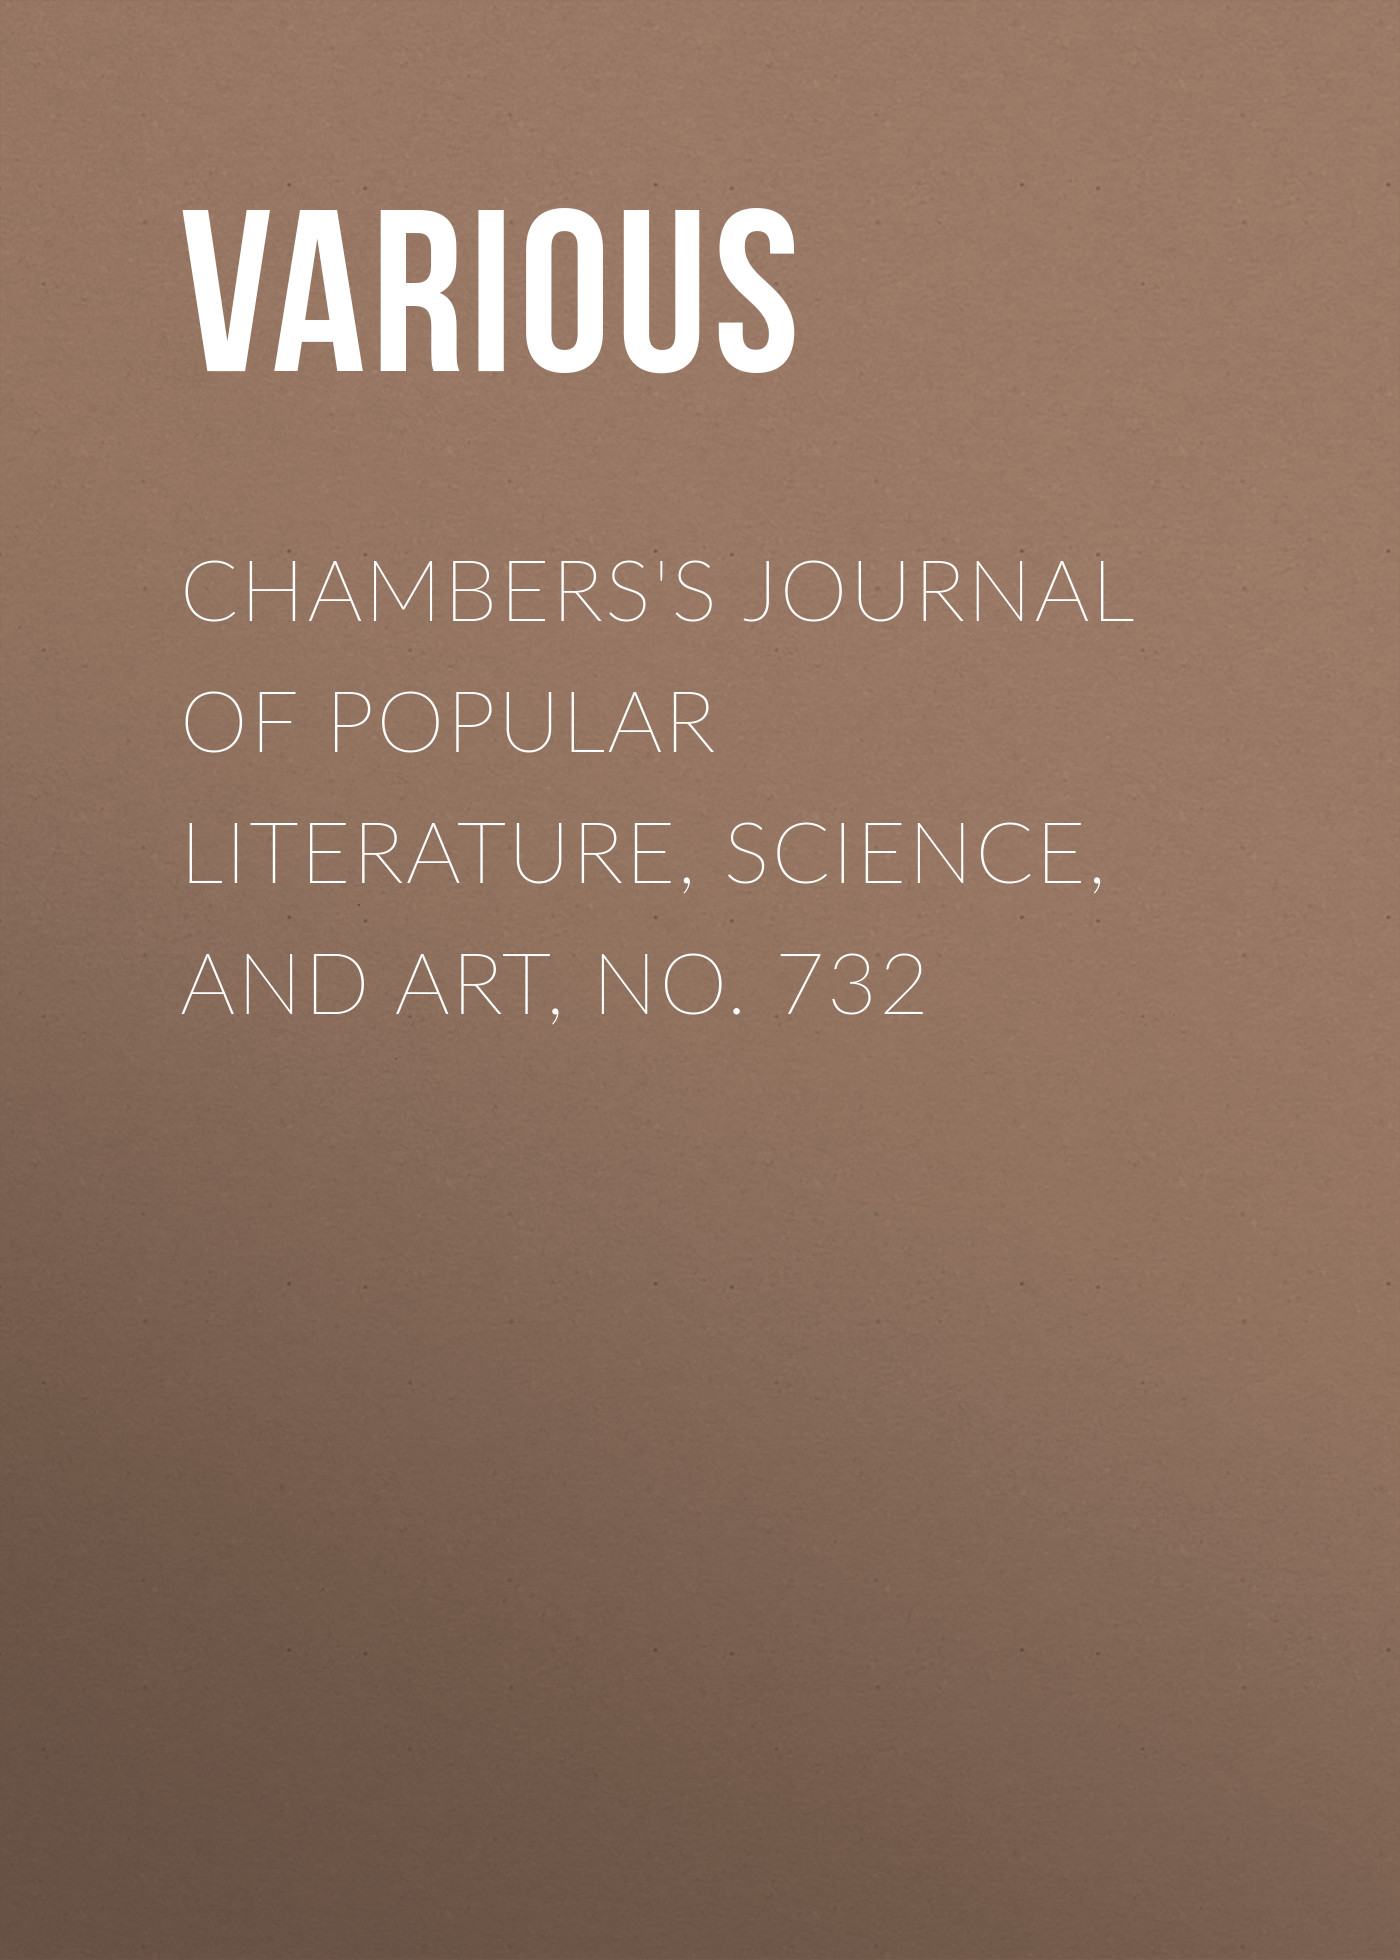 Various Chambers's Journal of Popular Literature, Science, and Art, No. 732 various chambers s journal of popular literature science and art no 709